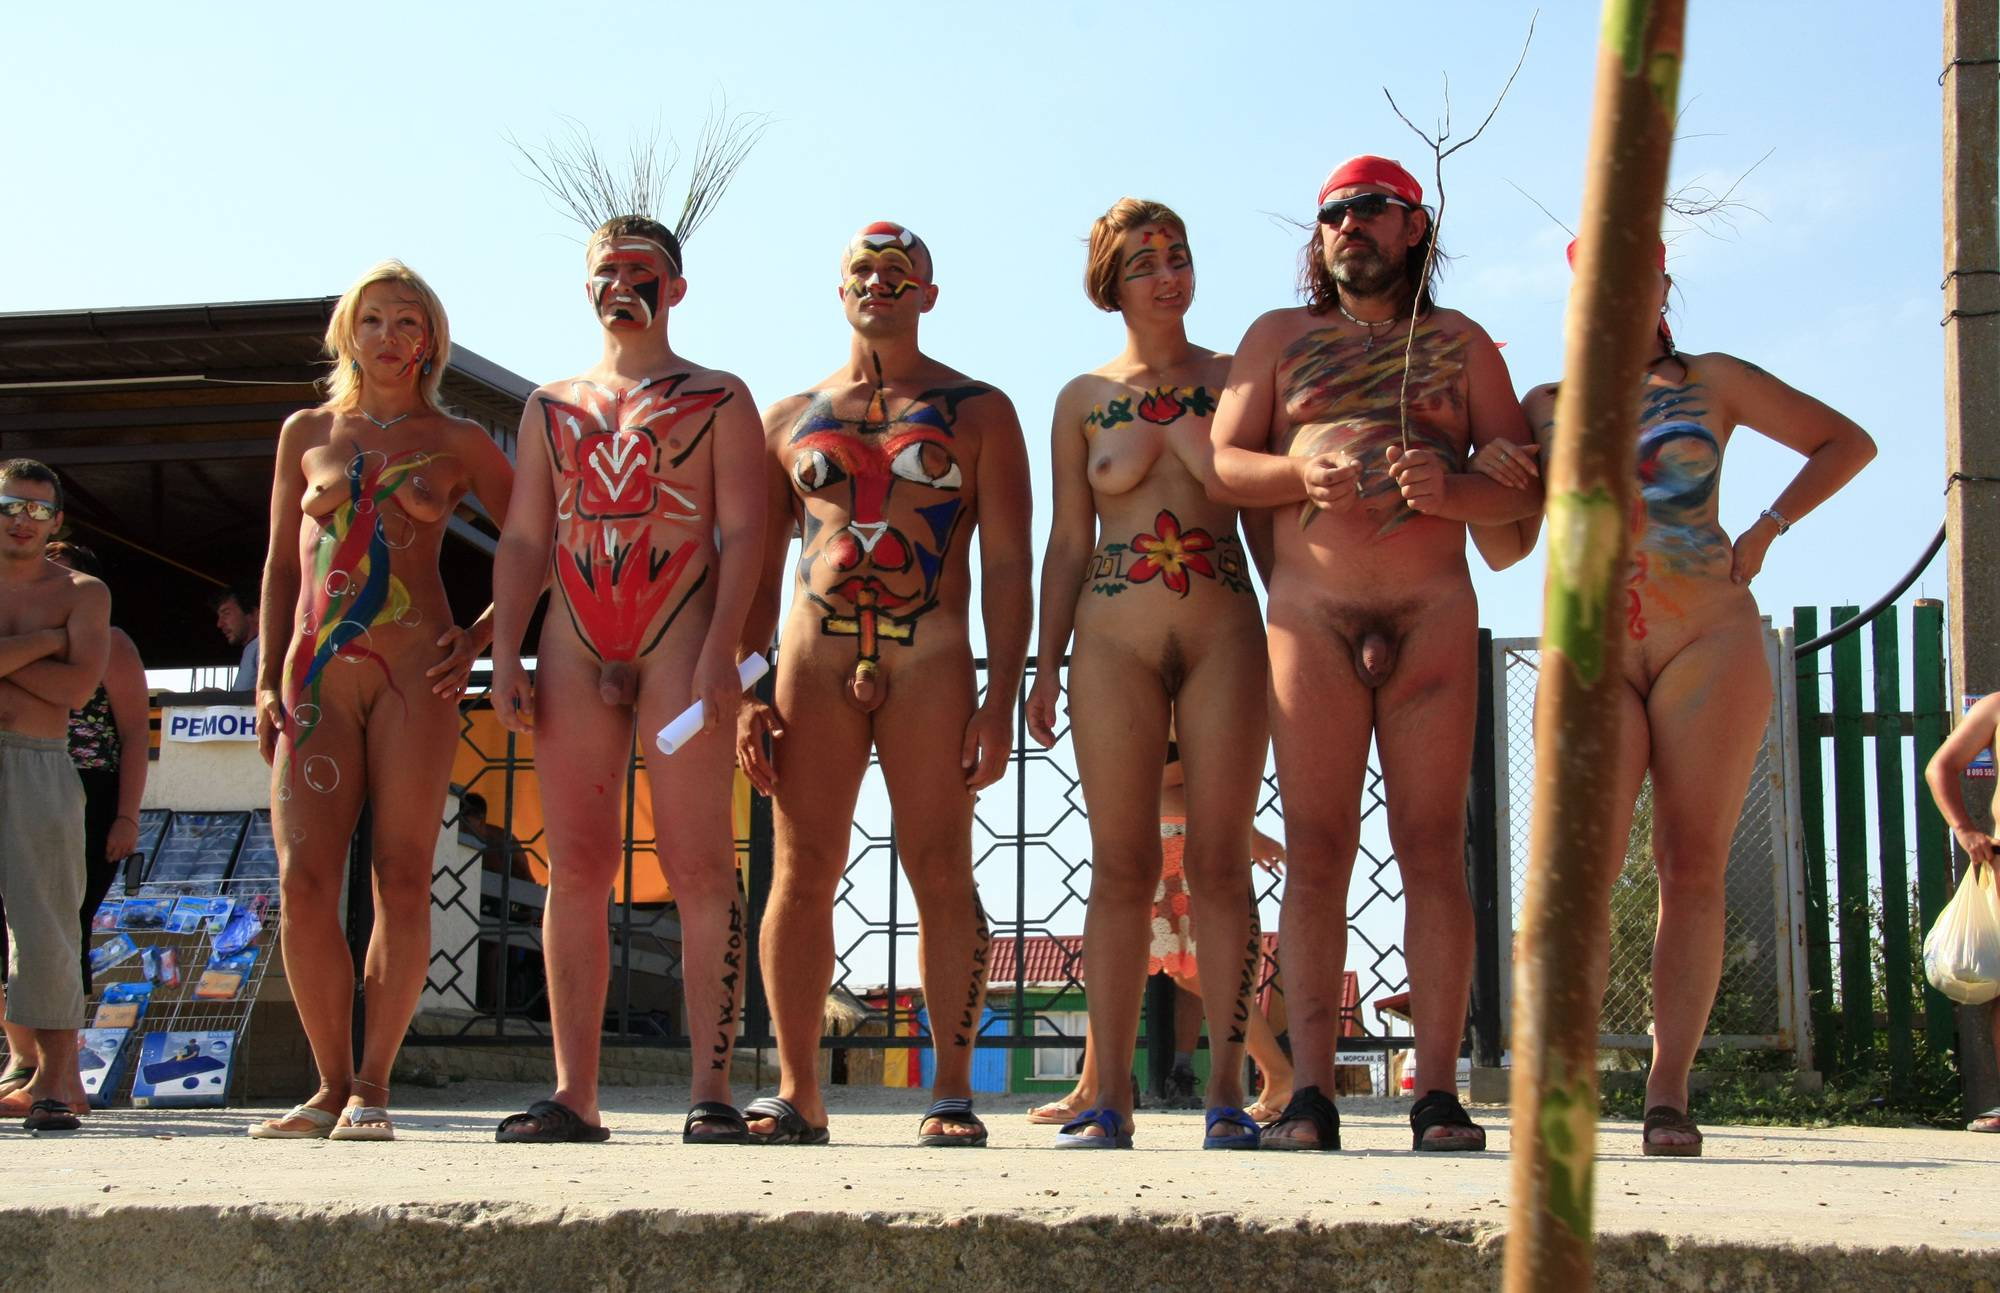 Nudist Photos Strong and Bold We Stand - 2